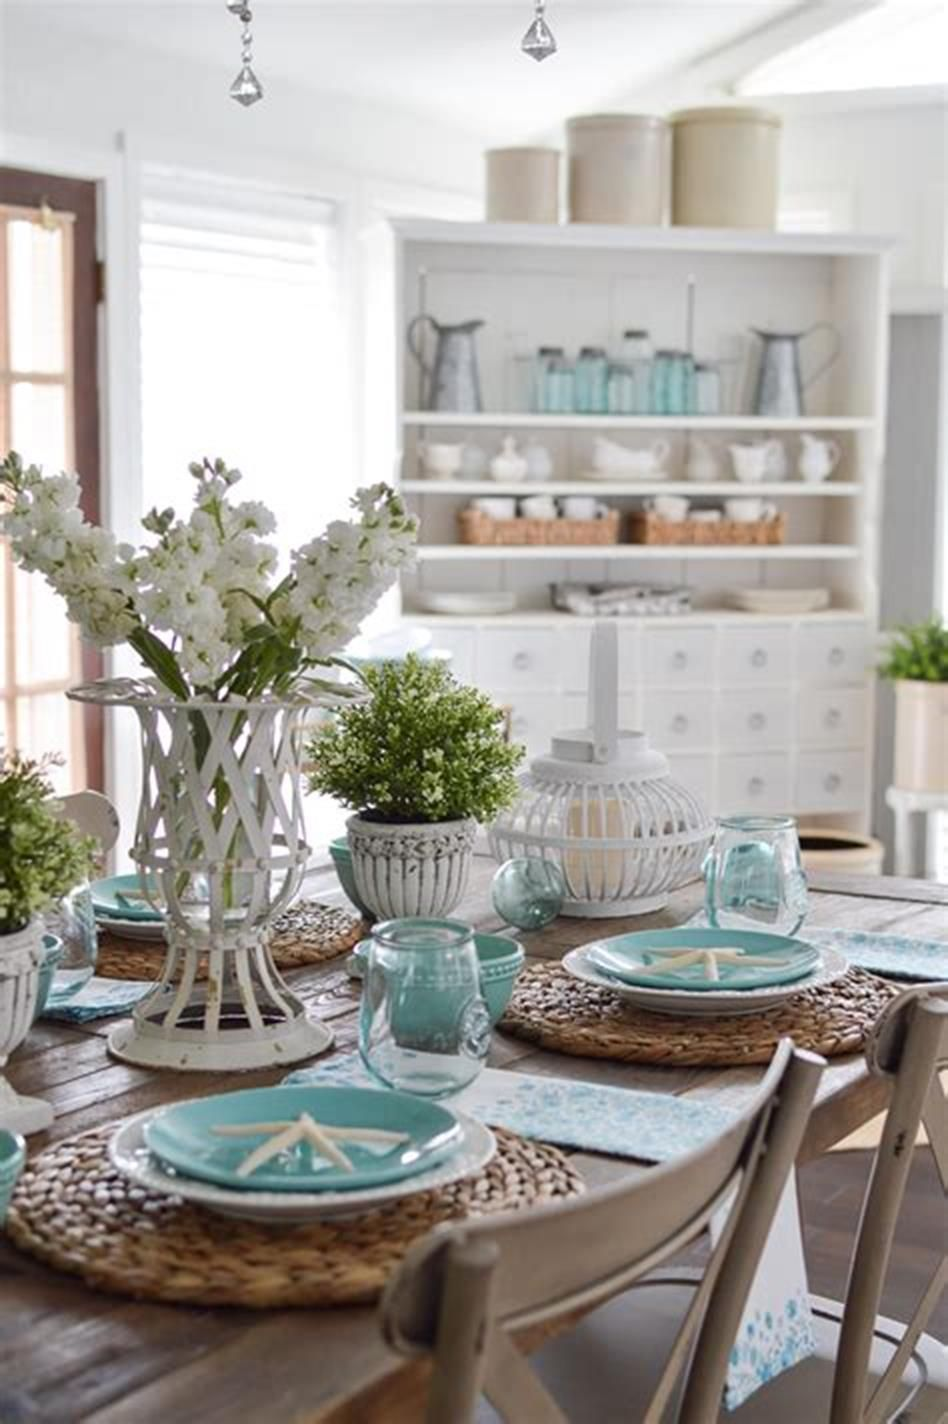 48 Best And Beautiful Farmhouse Table Centerpiece Ideas Craft Home Ideas Dining Room Table Centerpieces Dining Room Centerpiece Dining Table Centerpiece